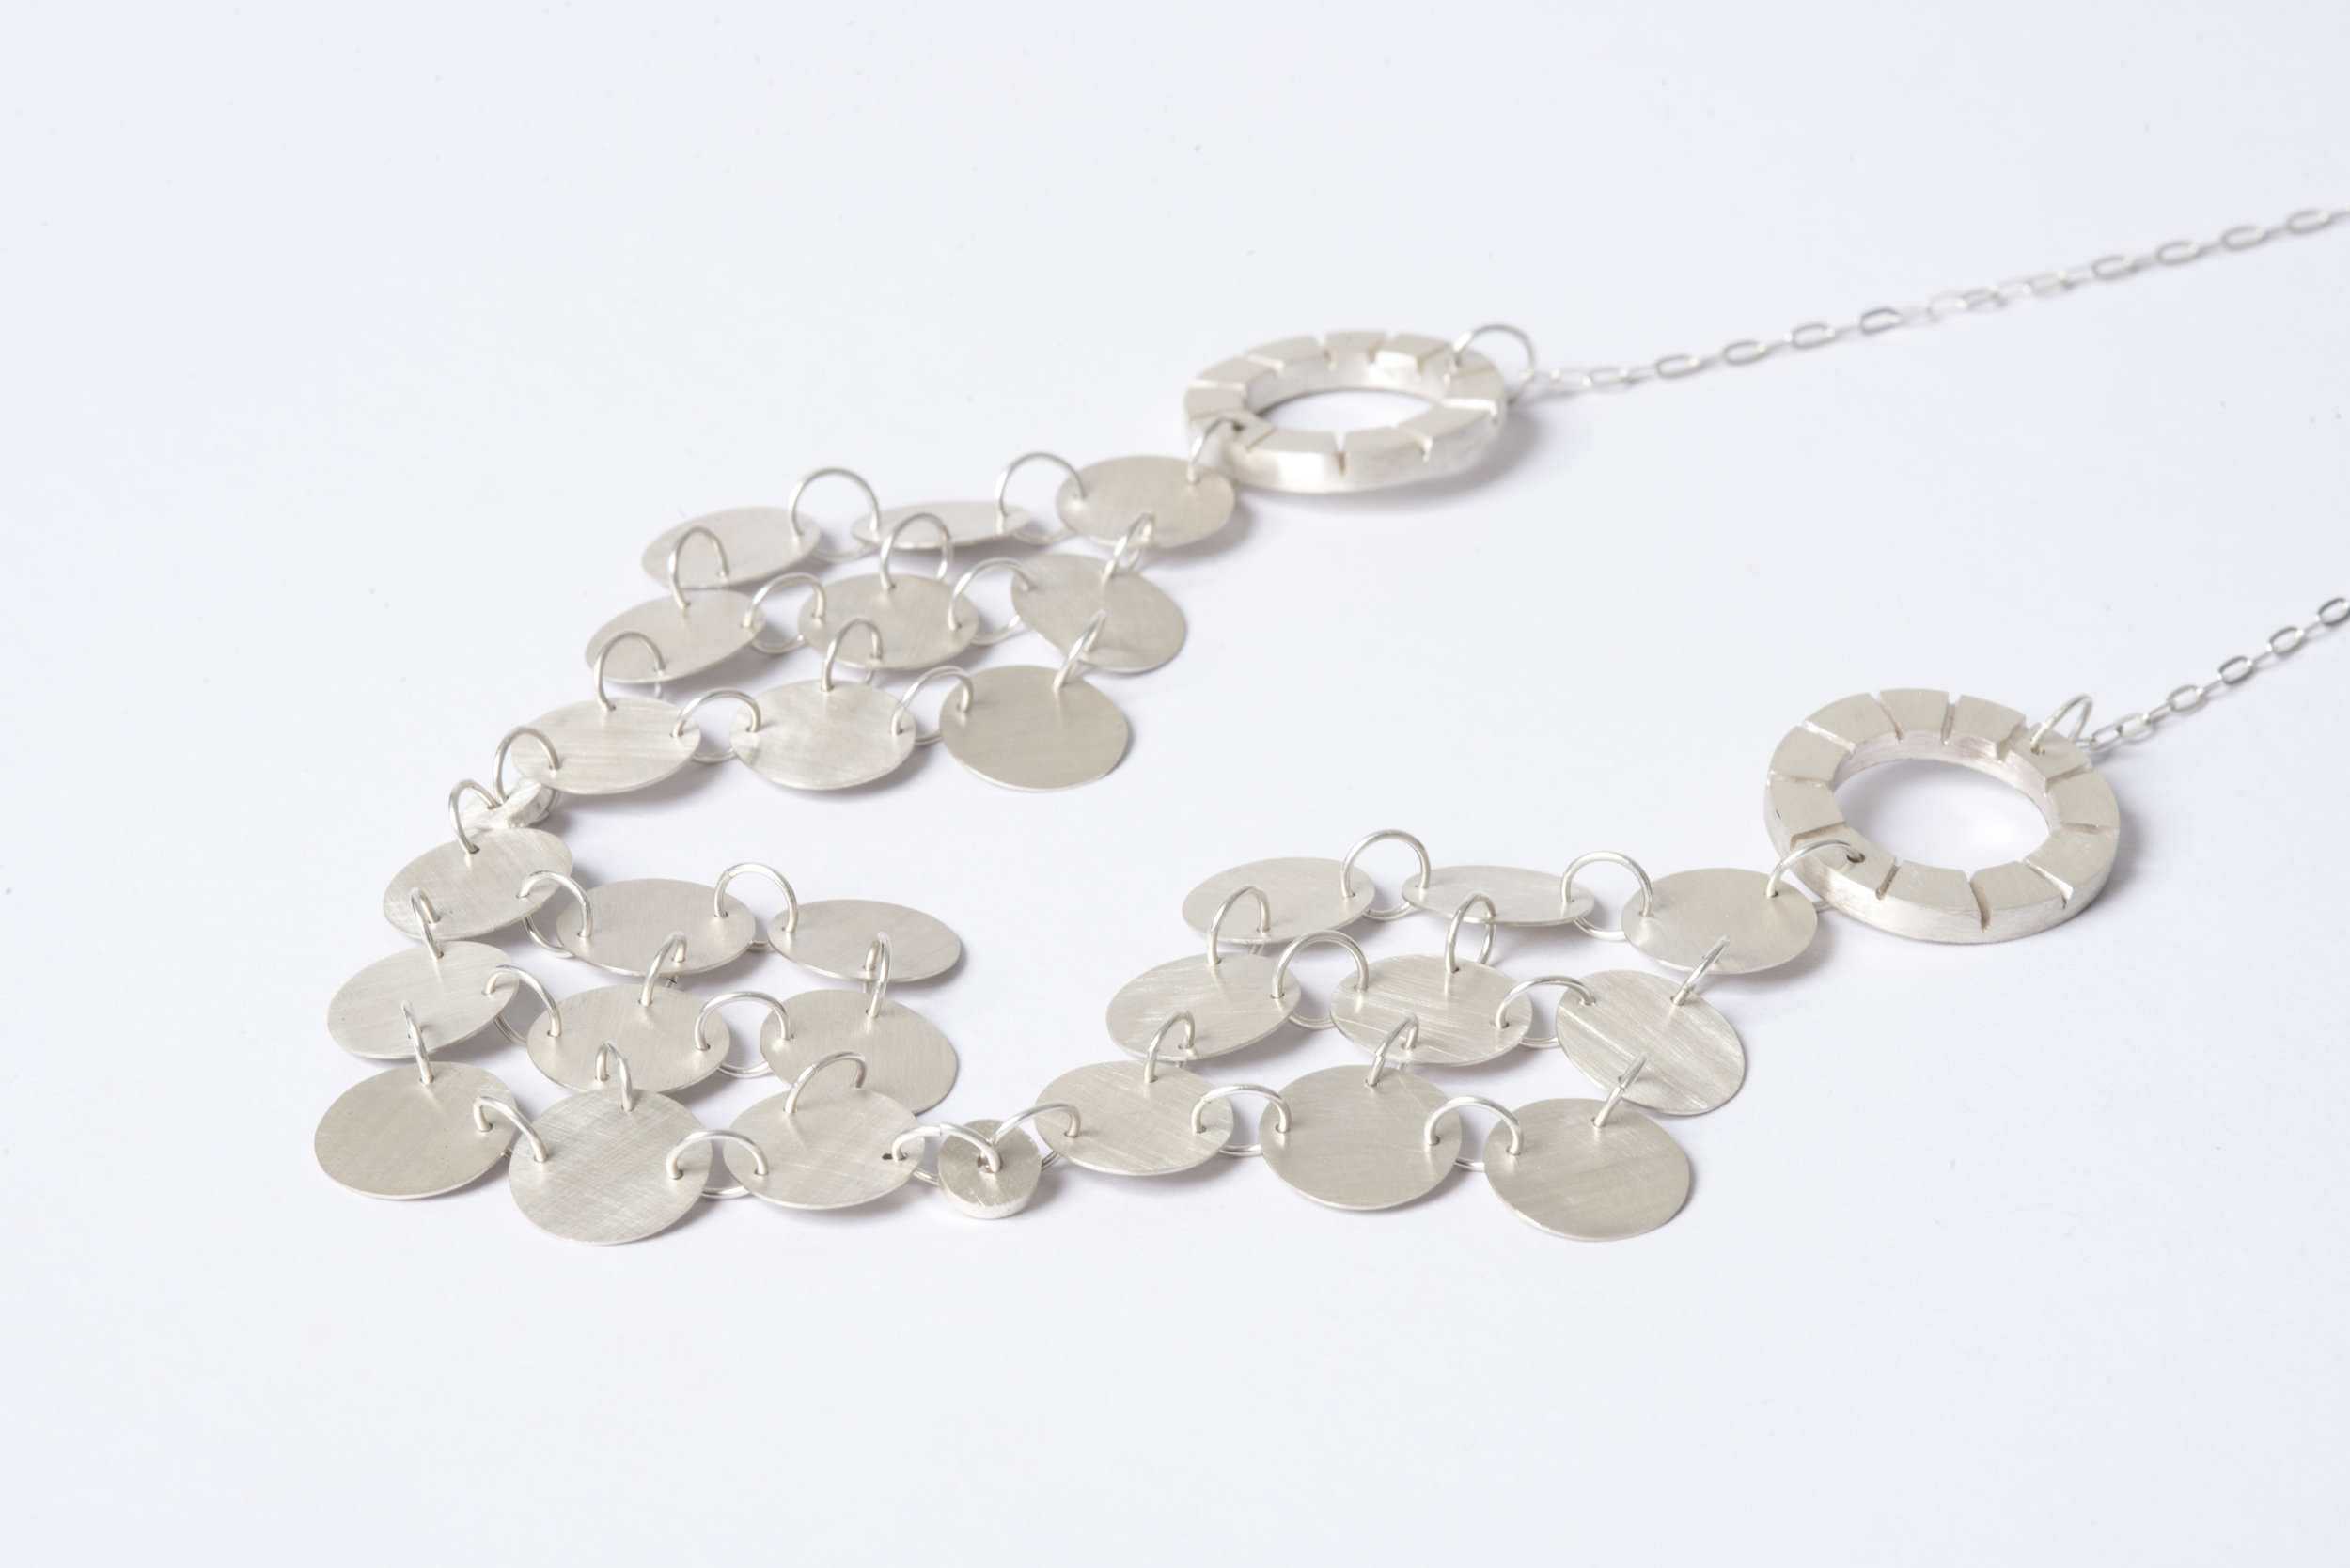 Chandelier Necklace £330